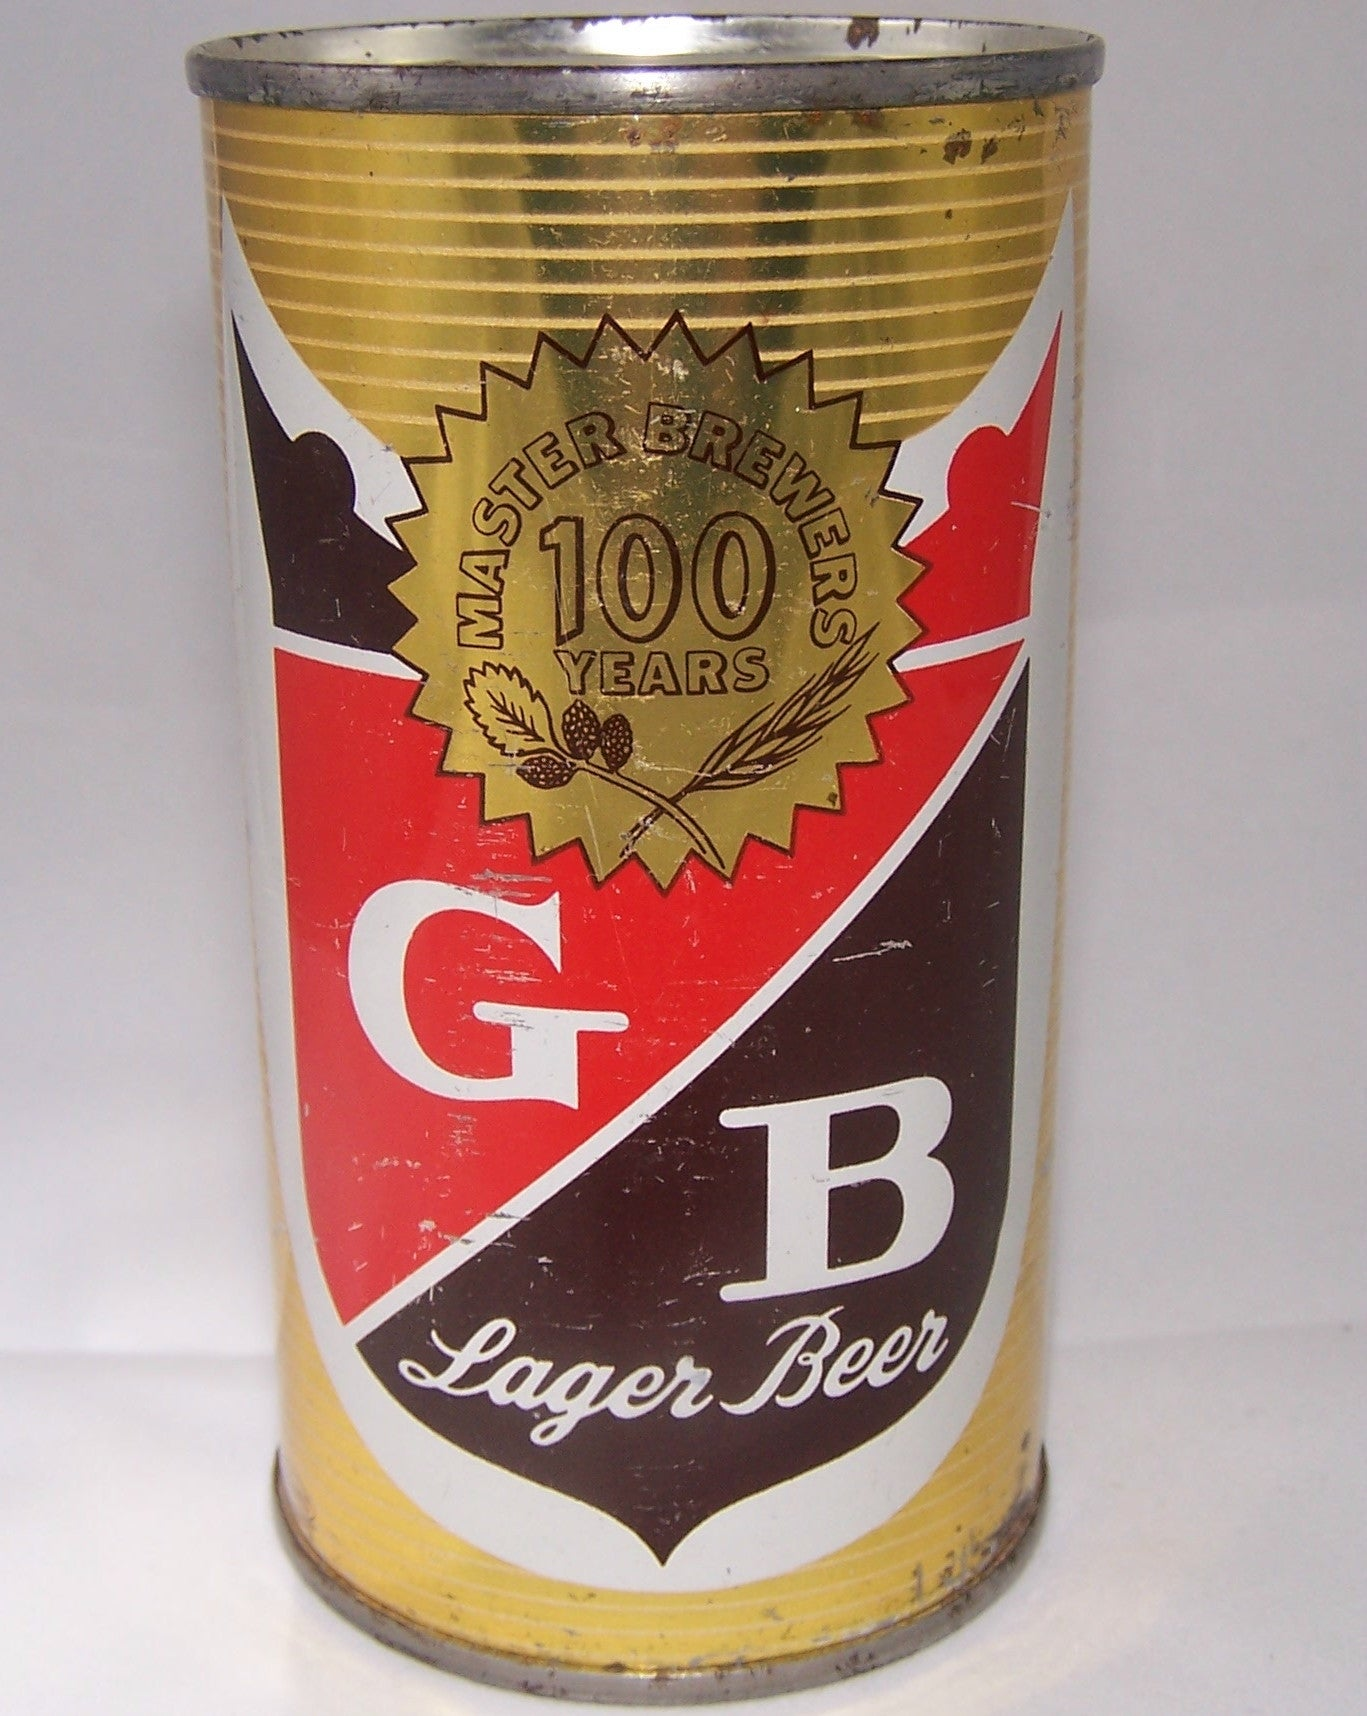 GB Lager Beer, USBC 71-28, (Maryland) Grade 1/1- Sold 4/10/15